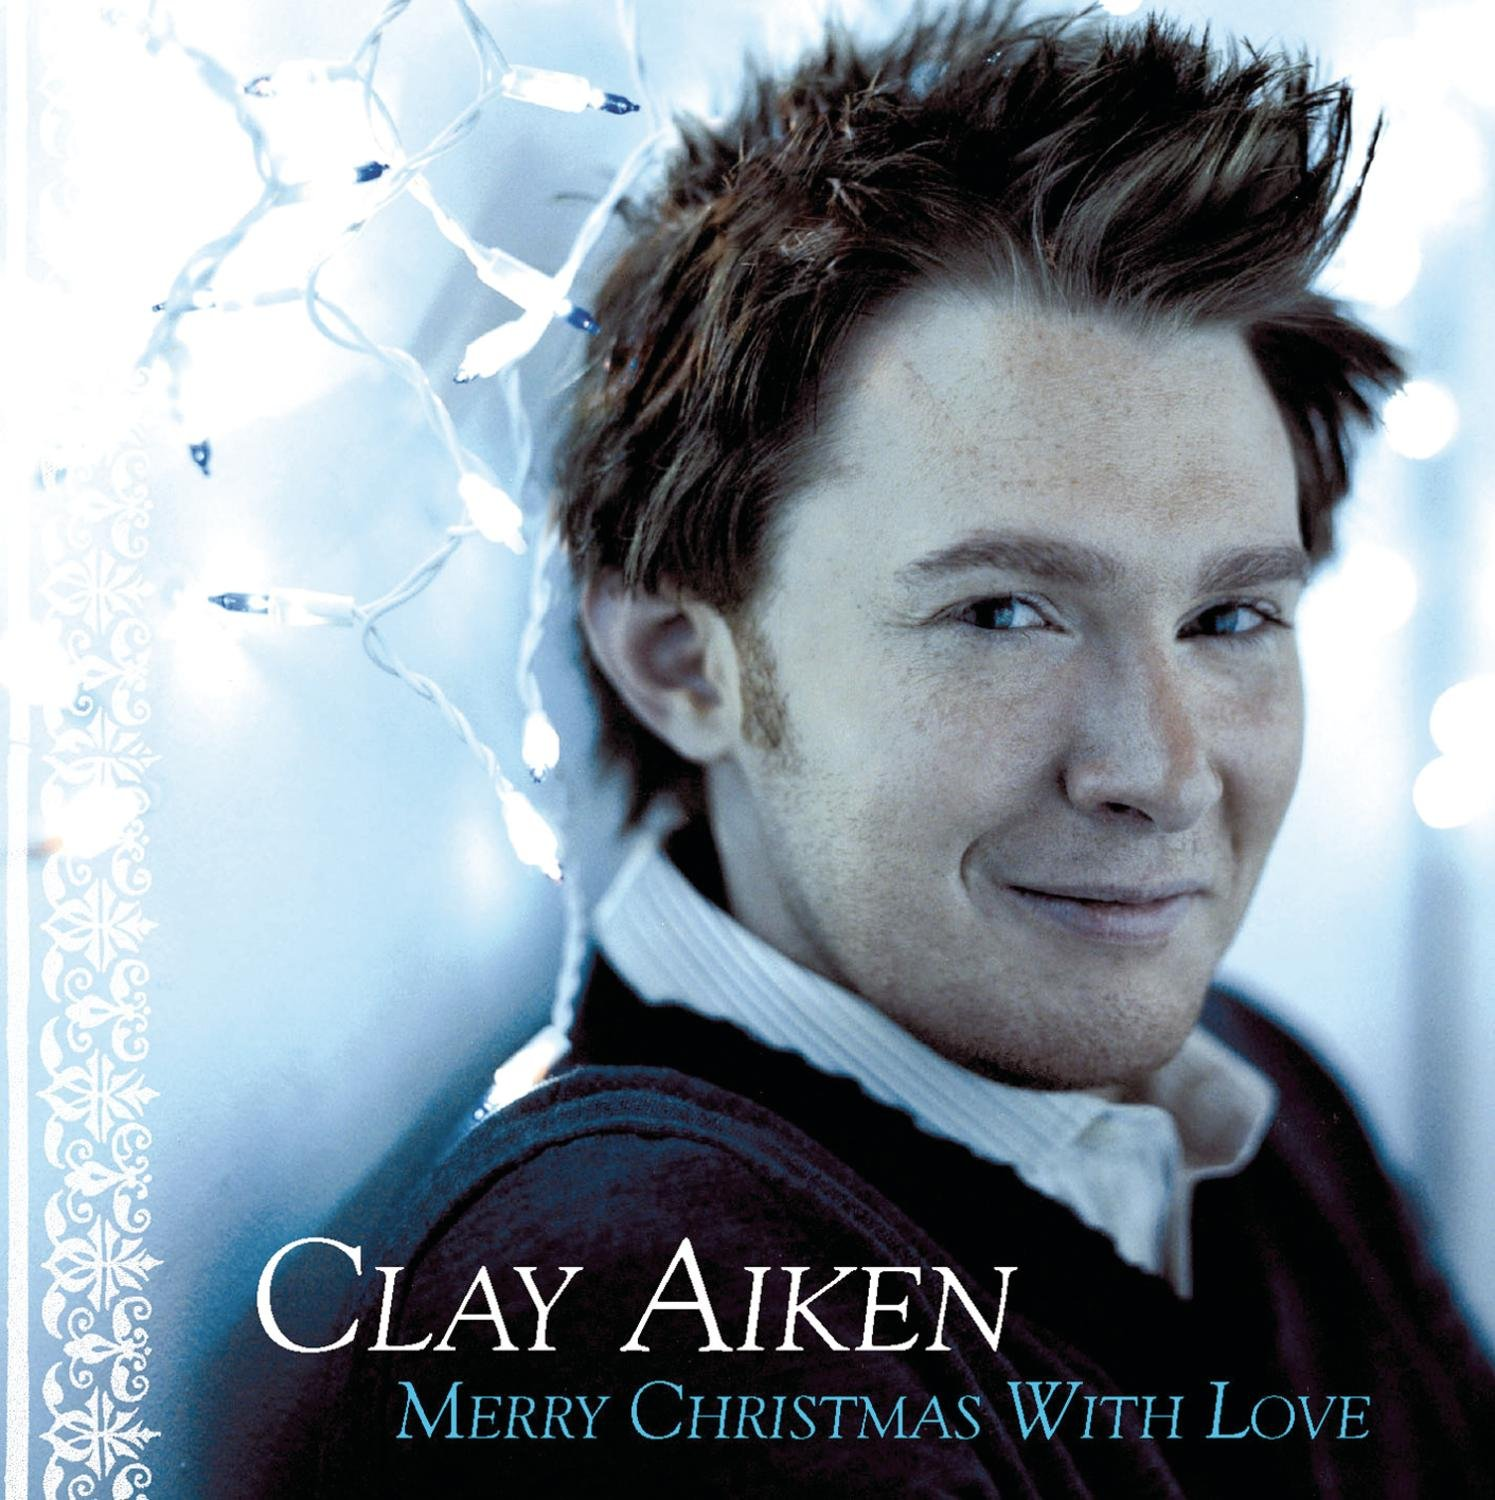 Clay Aiken - Merry Christmas With Love - Amazon.com Music